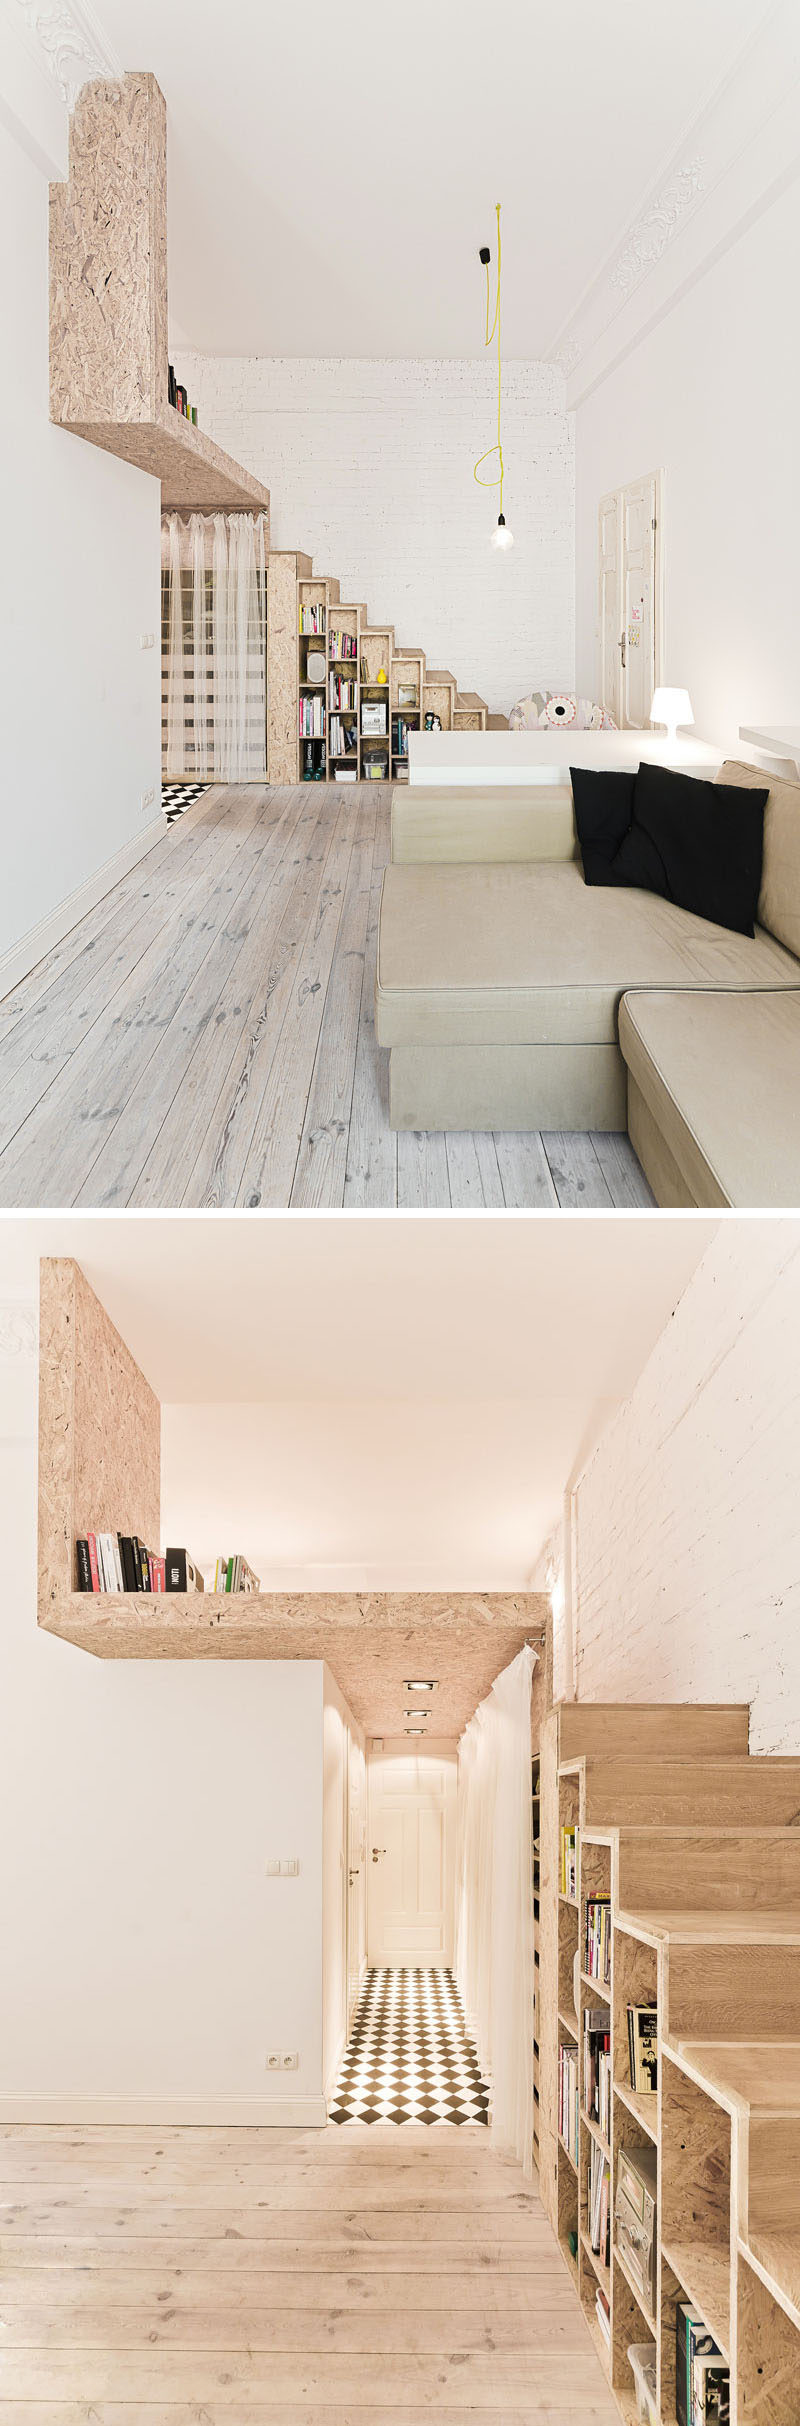 small-loft-apartment_090716_06-800x2426